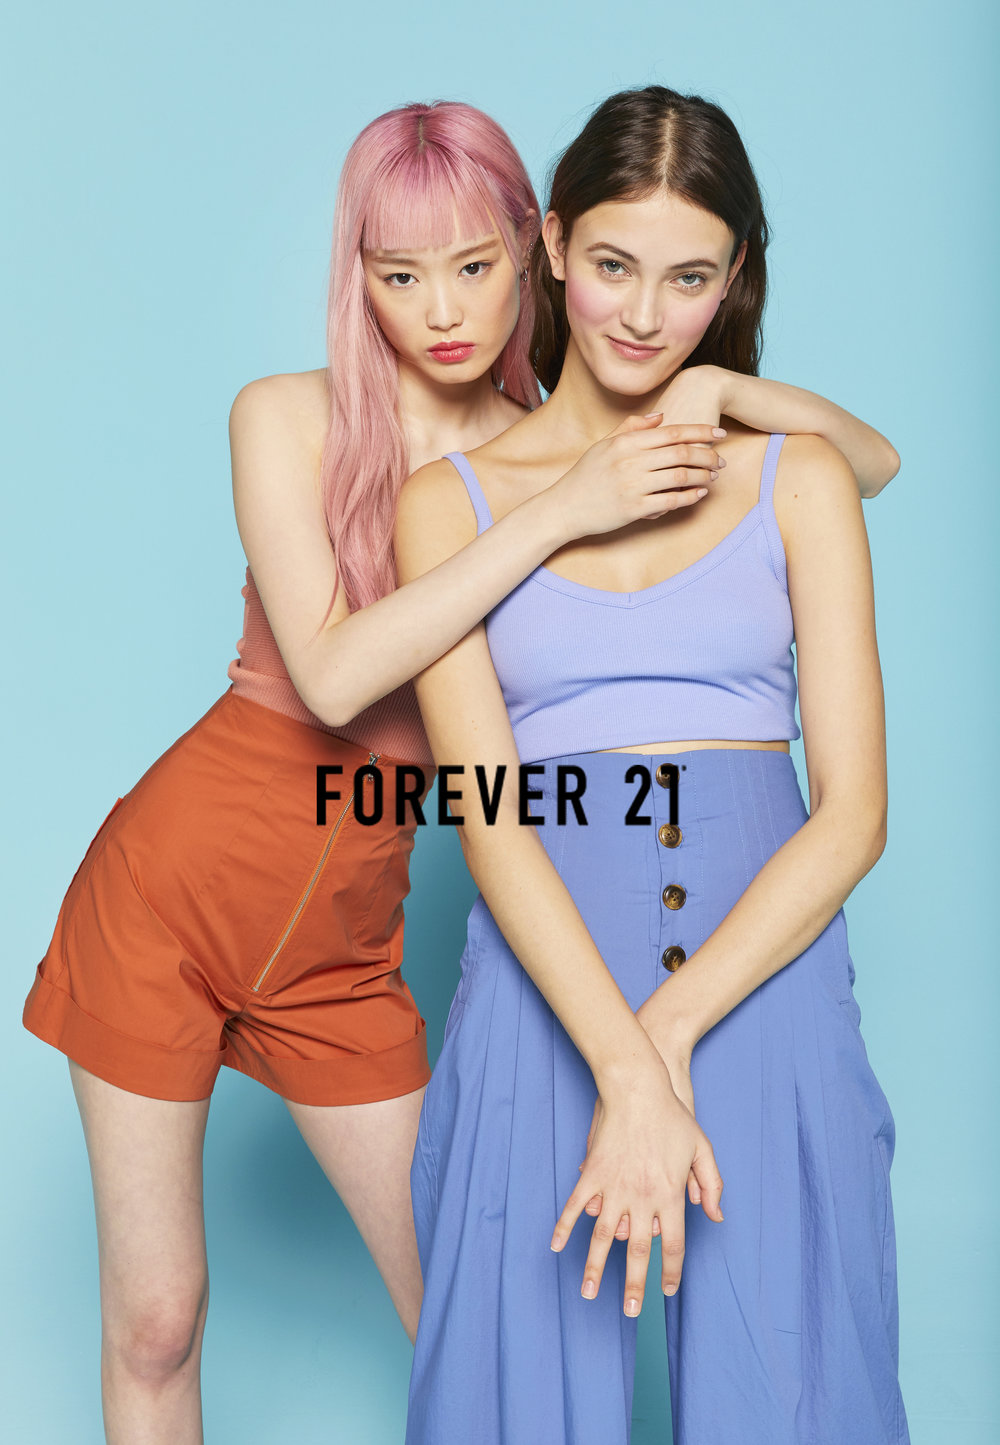 180226_FOREVER21_FW18_CAMPAIGN_SHOT06_SUMMERTREND_0845.jpg